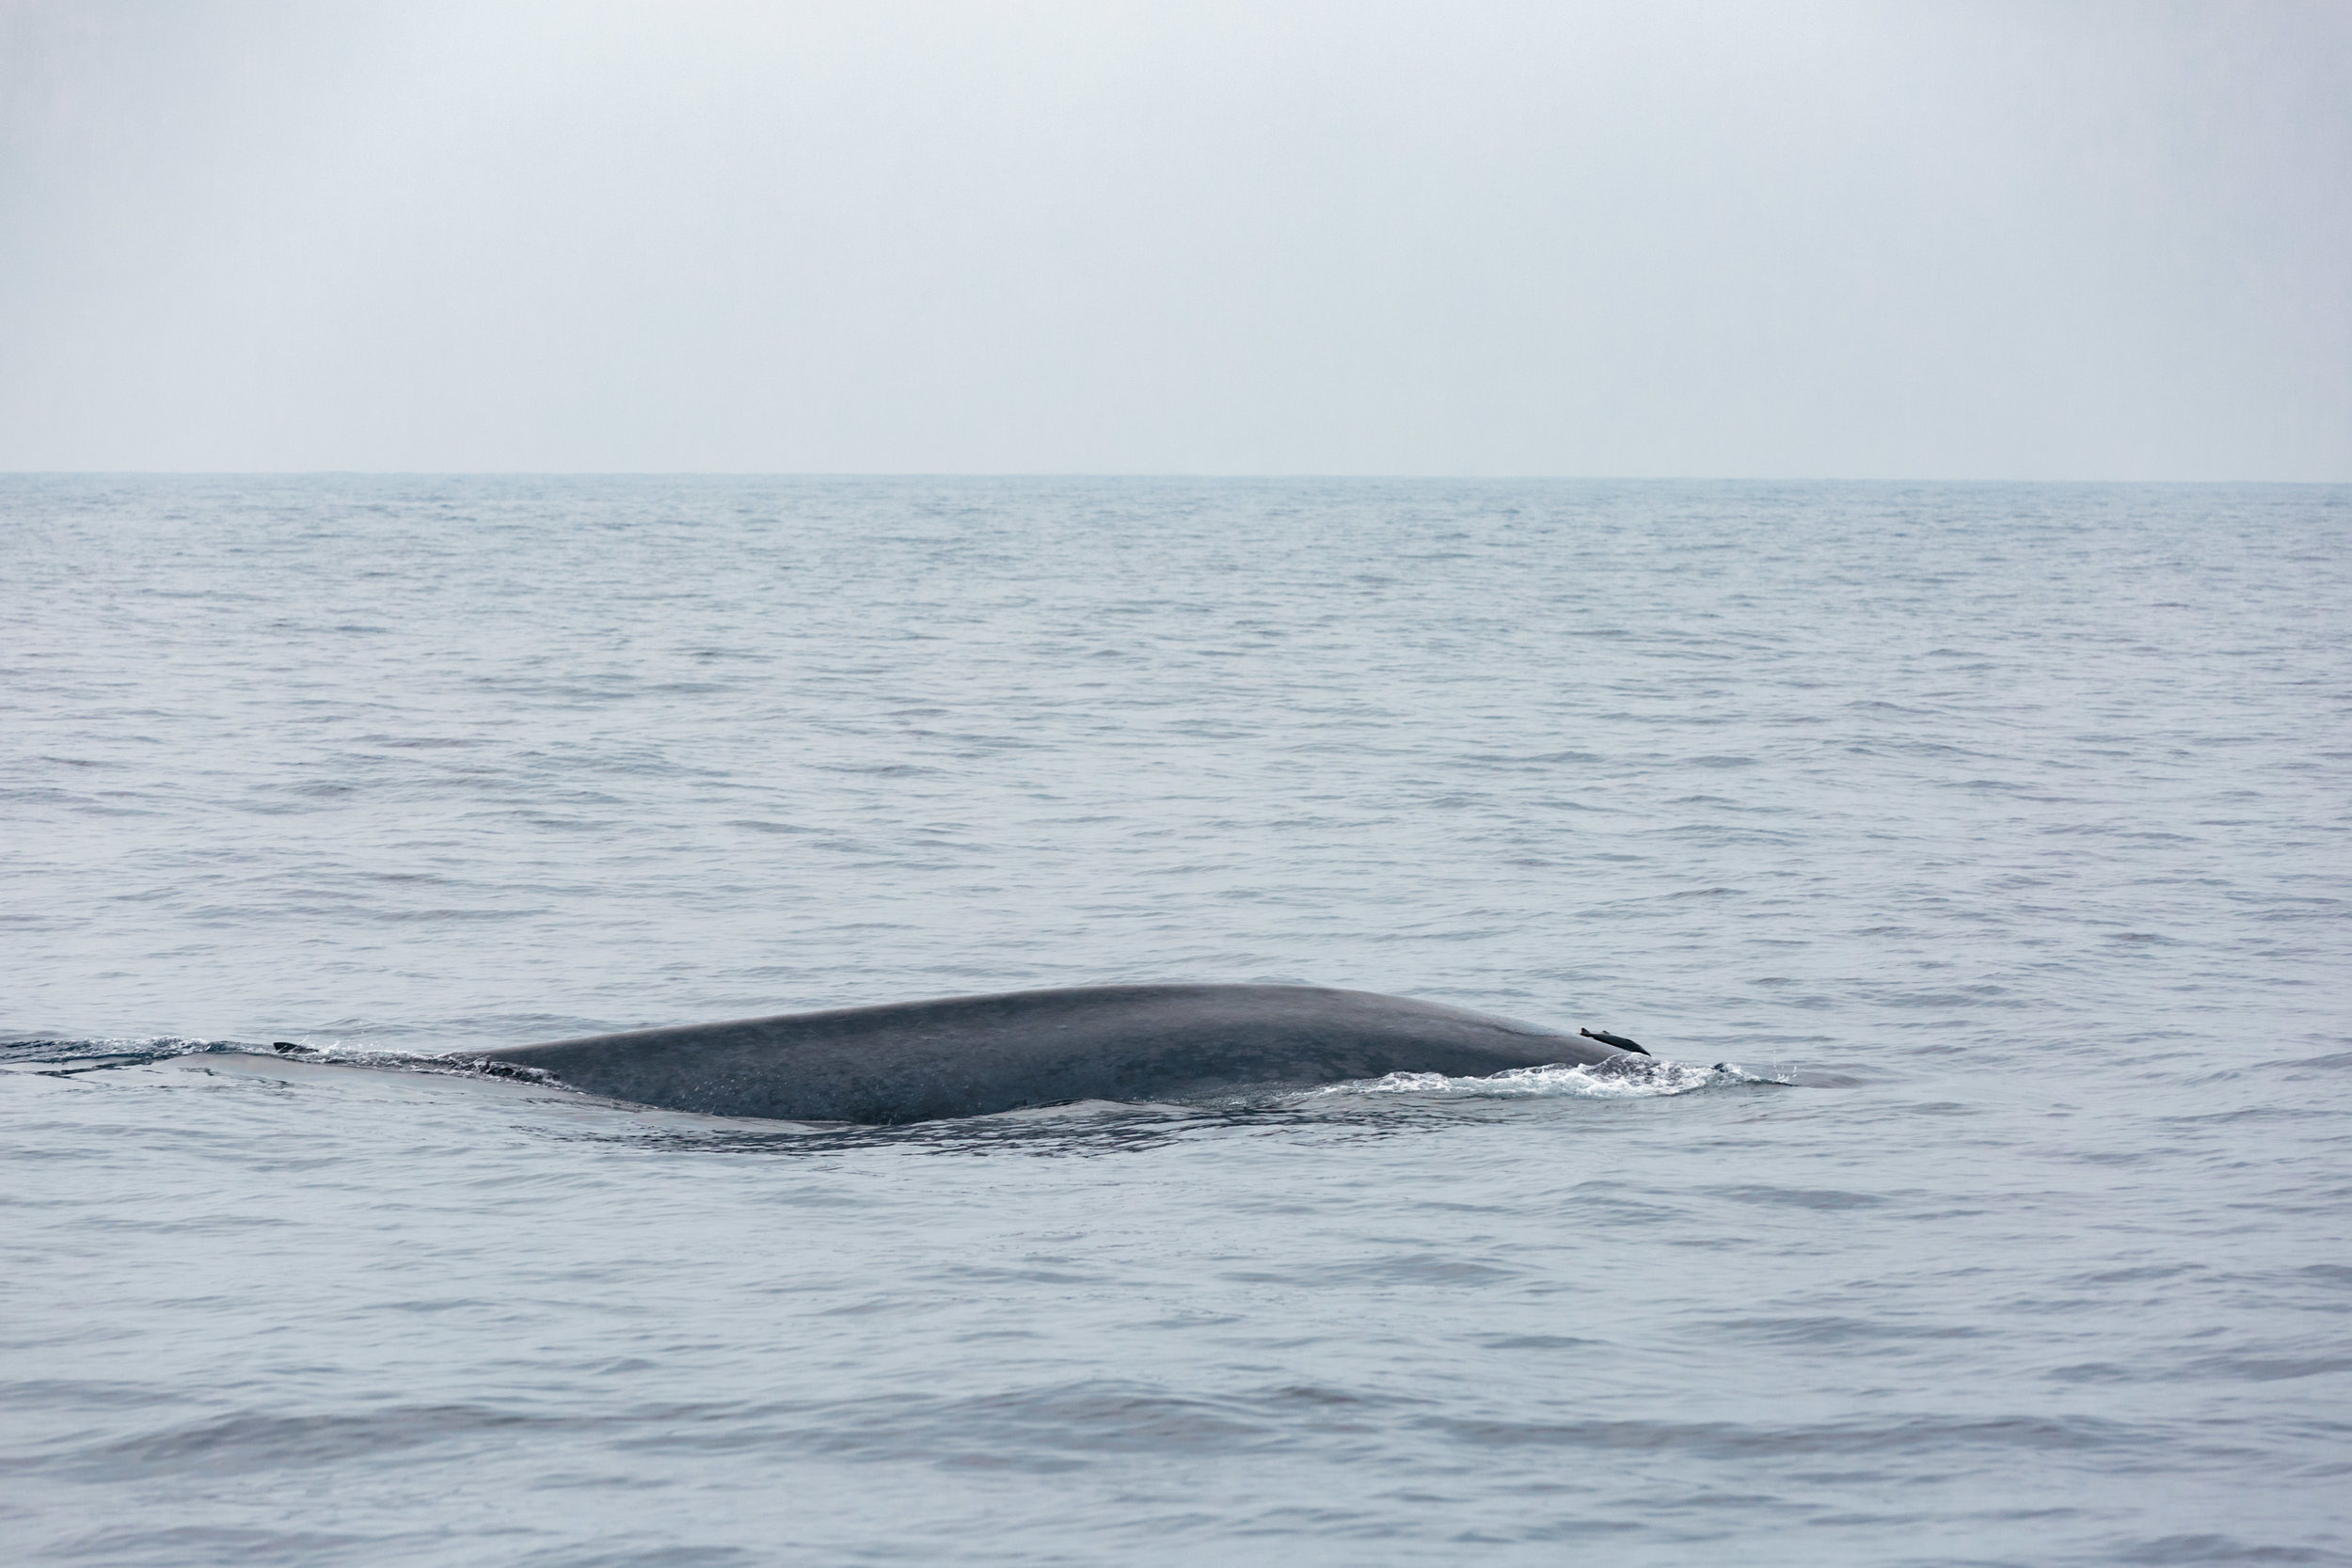 When the whale first surfaced - I think it has a fish on it's back!